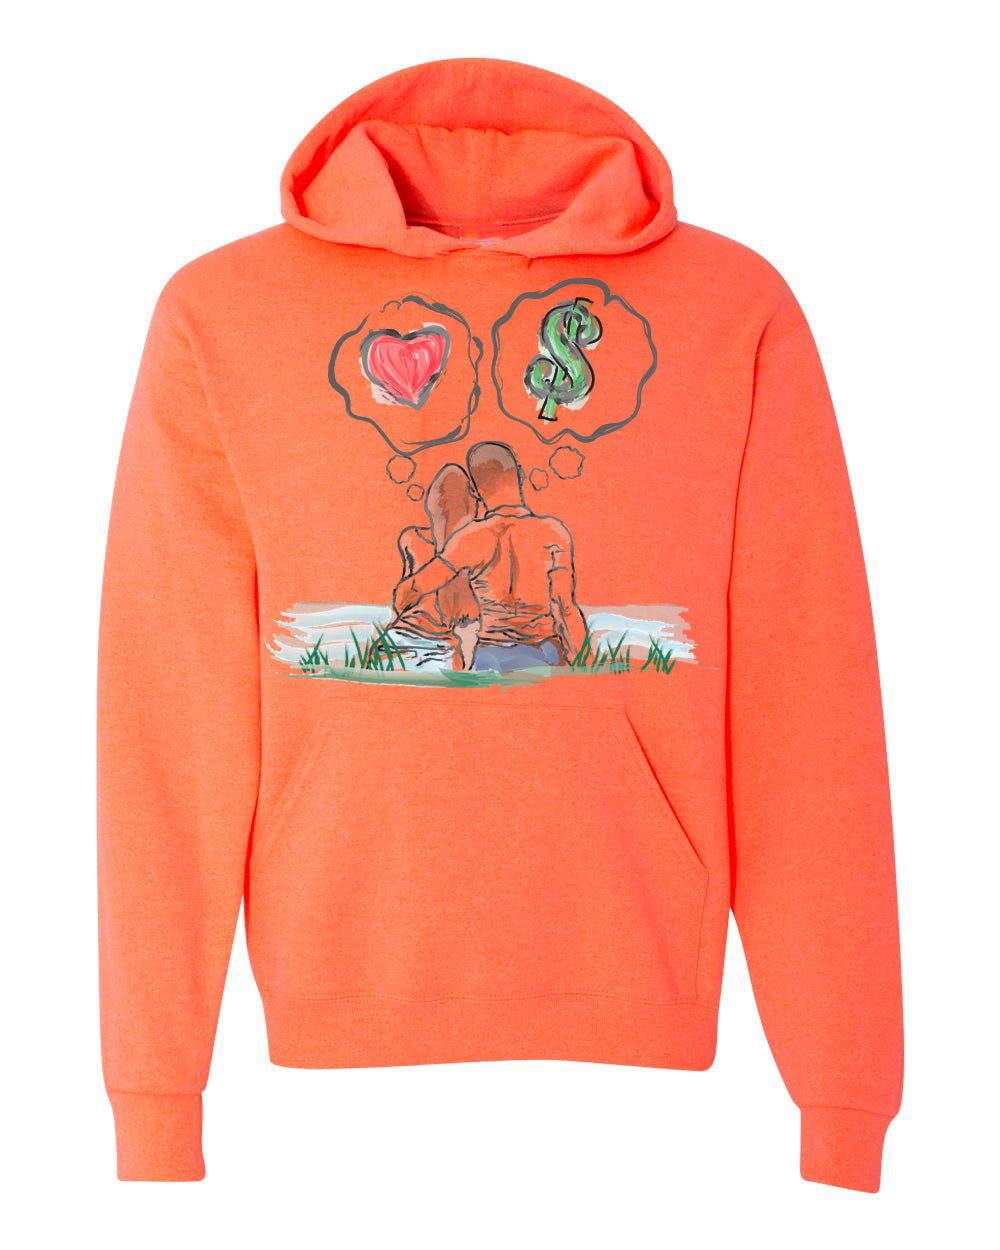 Guy Benson Collection Love Vs Money hoodie - adidas Yeezy Boost 700 Inertia color way